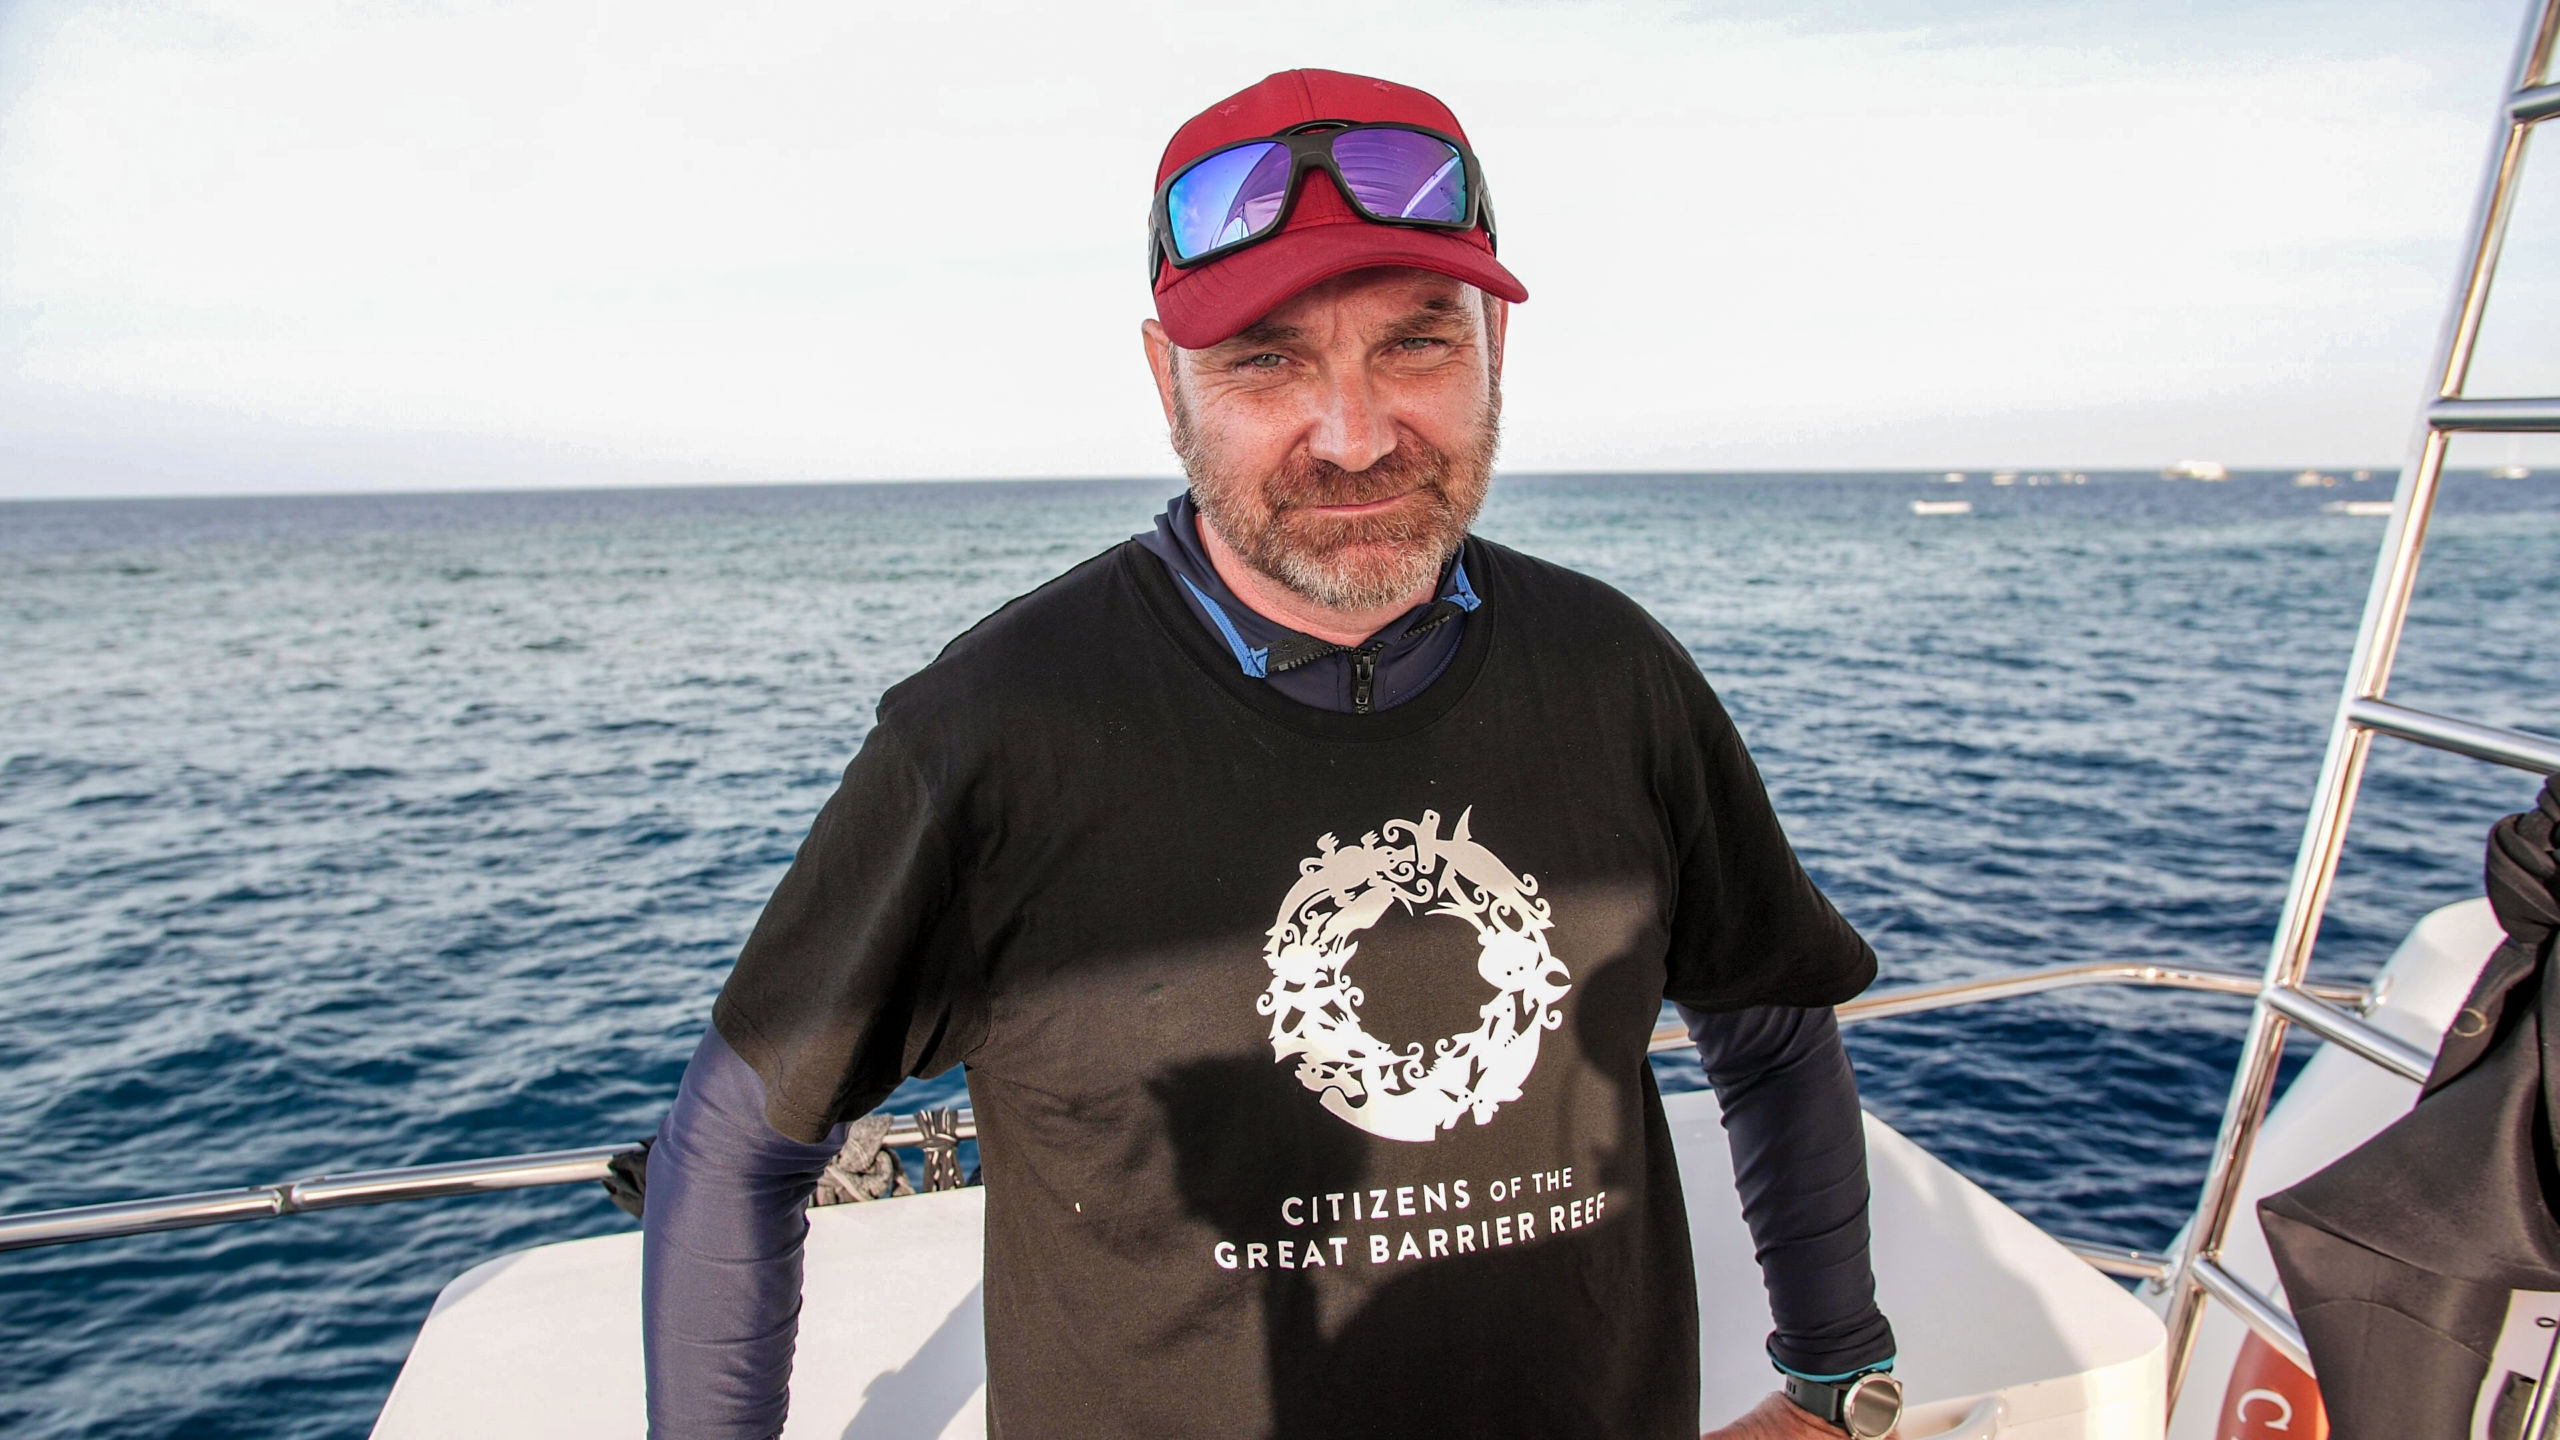 Citizens CEO Andy Ridley at Moore Reef. Credit: Phil Warring